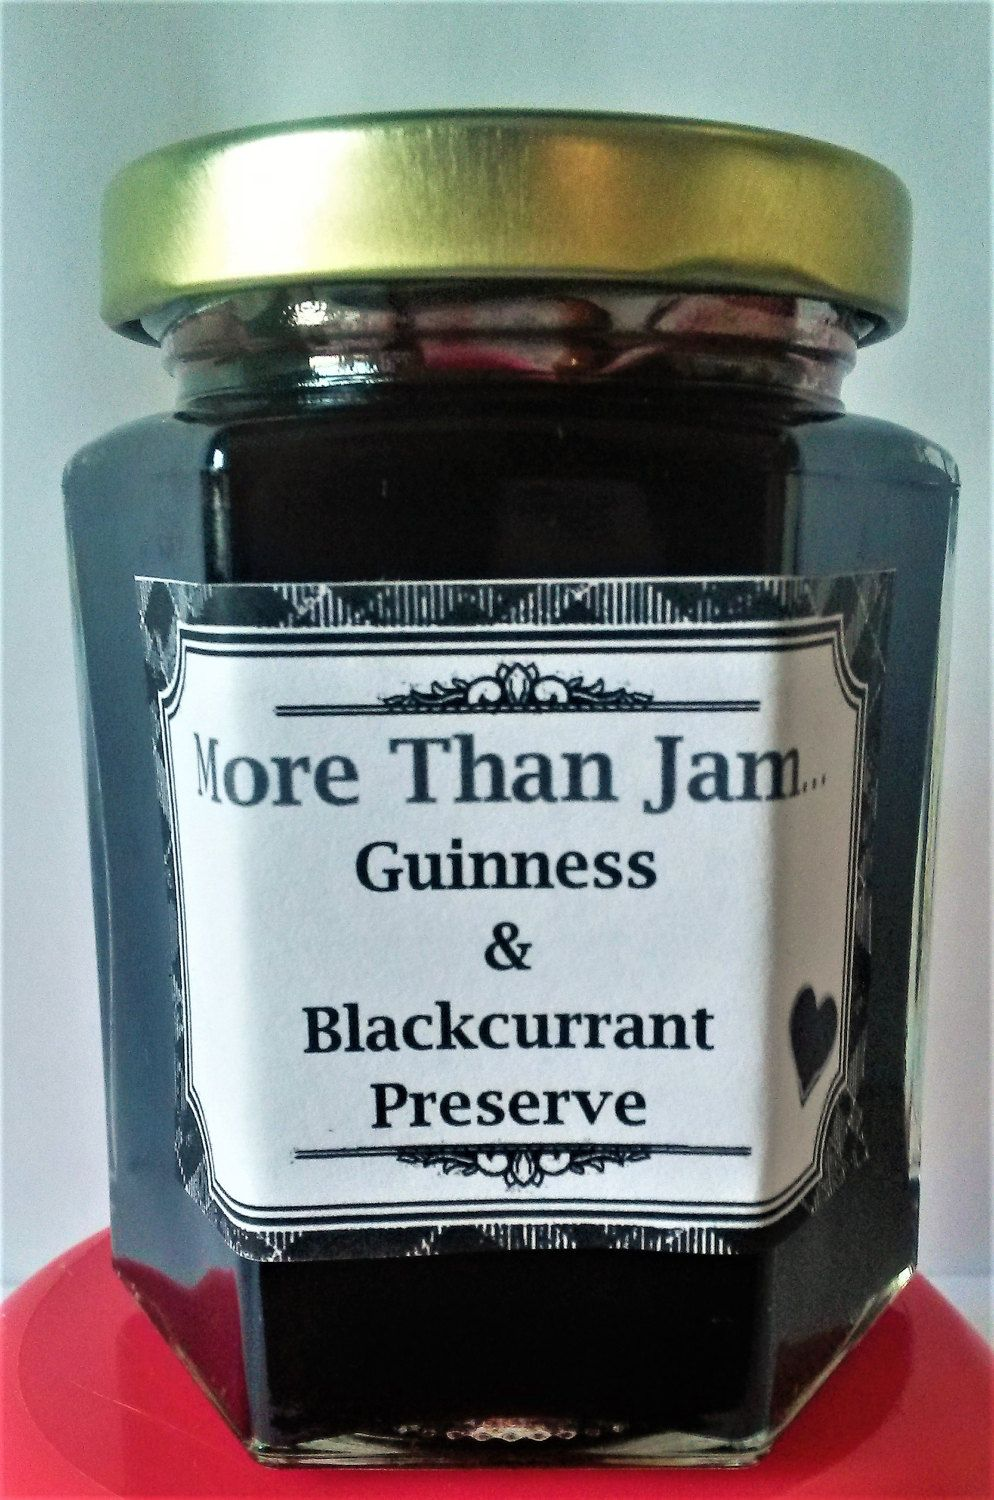 Artisan guinness blackcurrant preserve gifts for dad